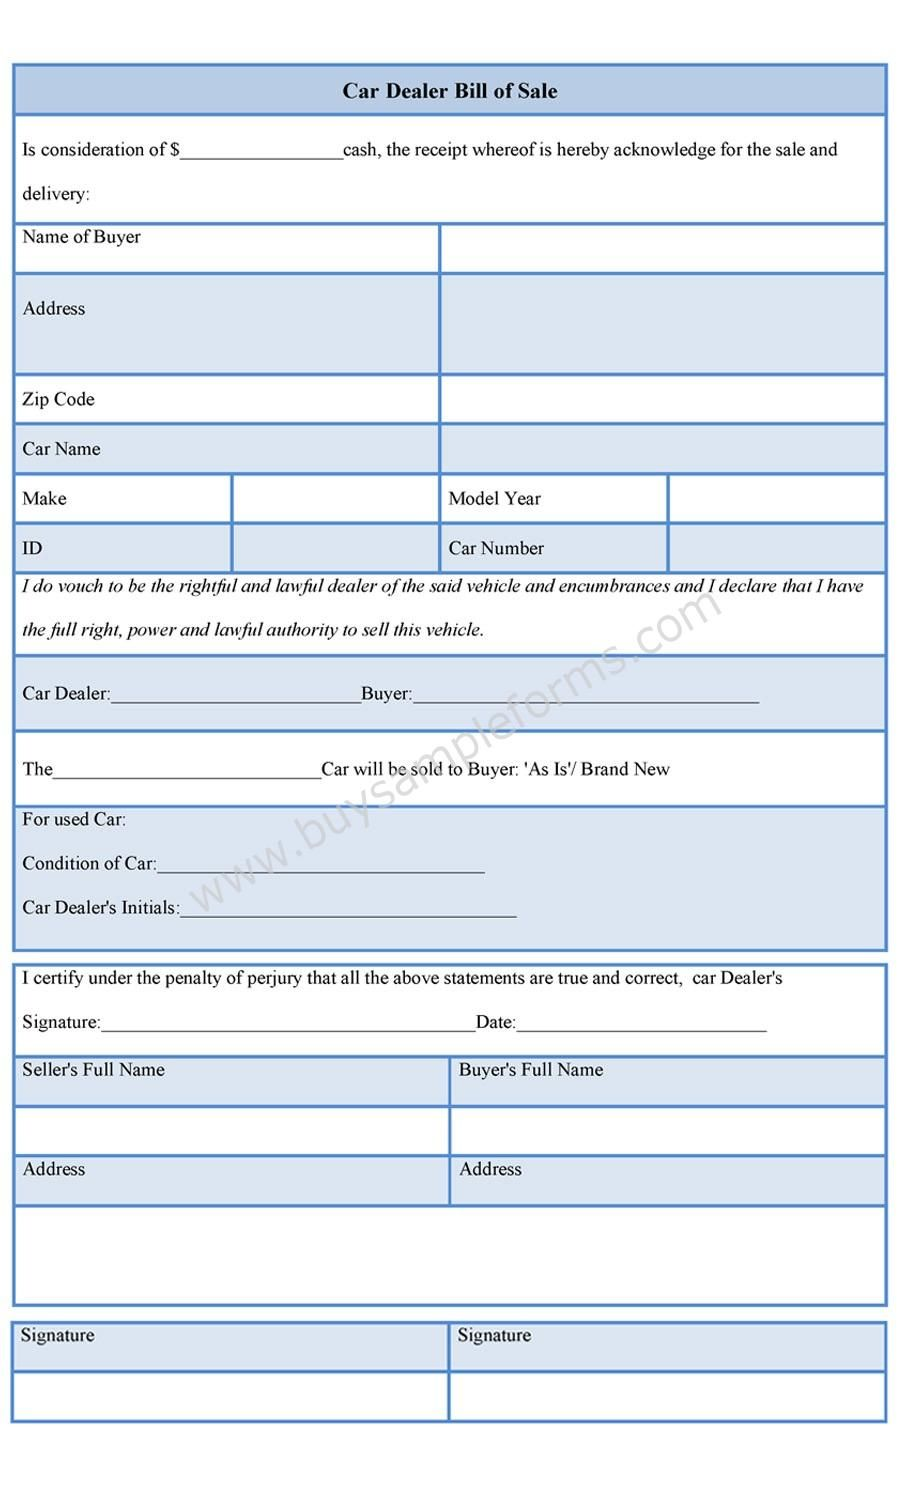 Download Sample Car Dealer Bill Of Sale Template Is Available